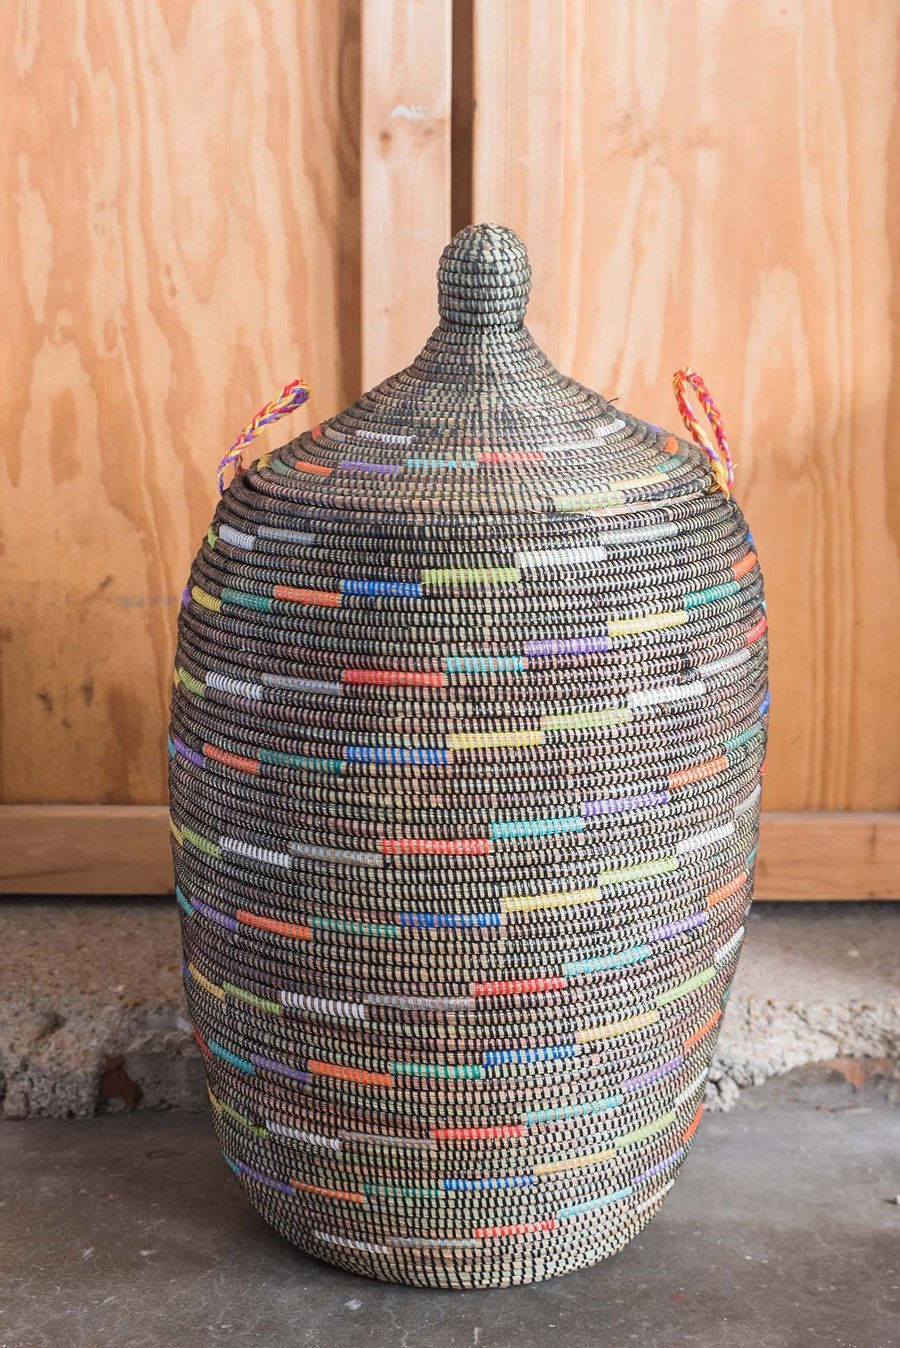 Black woven basket with multicolored accents